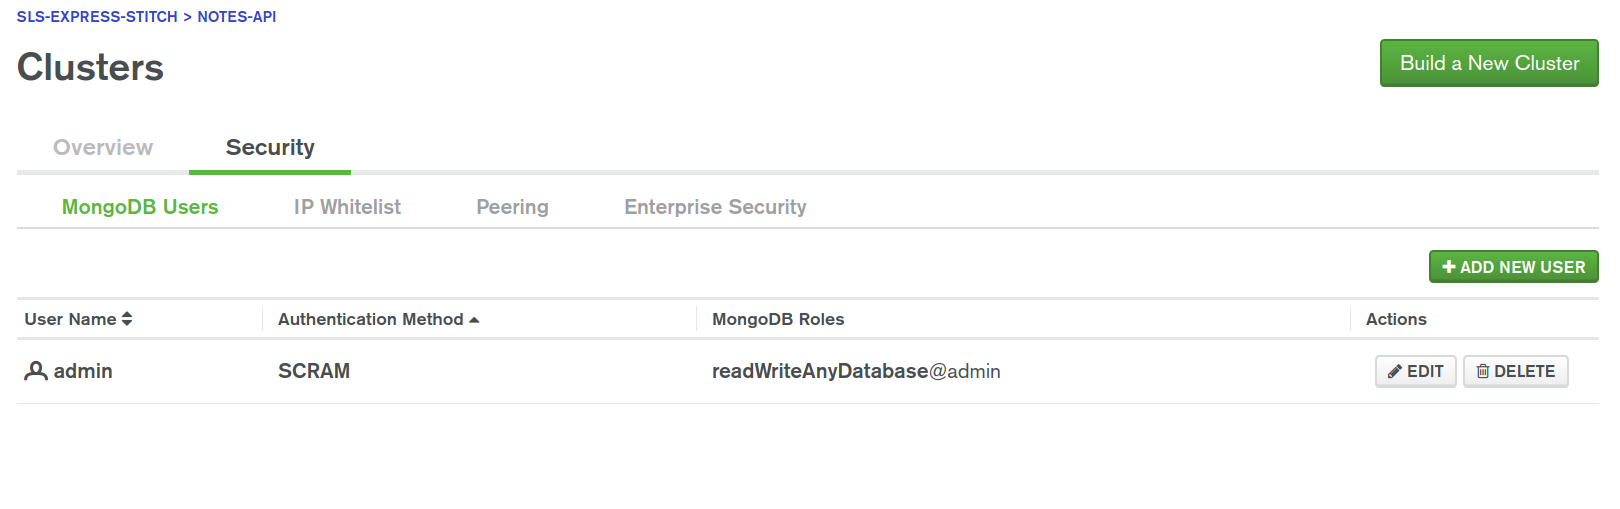 A Crash Course on Serverless APIs with Express and MongoDB - DZone Cloud